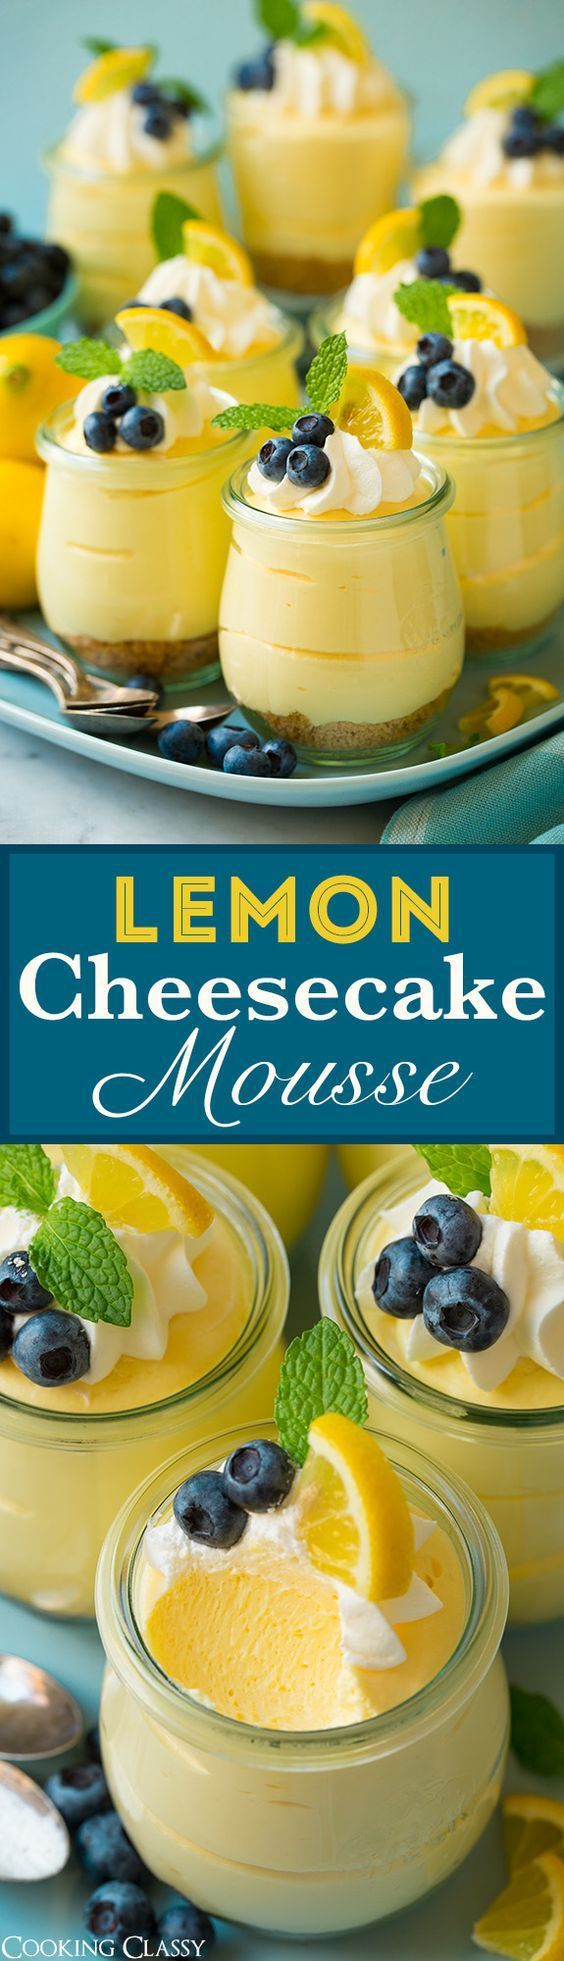 Lemon Cheesecake Mousse Recipe via Cooking Classy - the ULTIMATE spring dessert! These are to die for! No one can stop at one bite! The BEST Easy Lemon Desserts and Treats Recipes - Perfect For Easter, Mother's Day Brunch, Bridal or Baby Showers and Pretty Spring and Summer Holiday Party Refreshments!